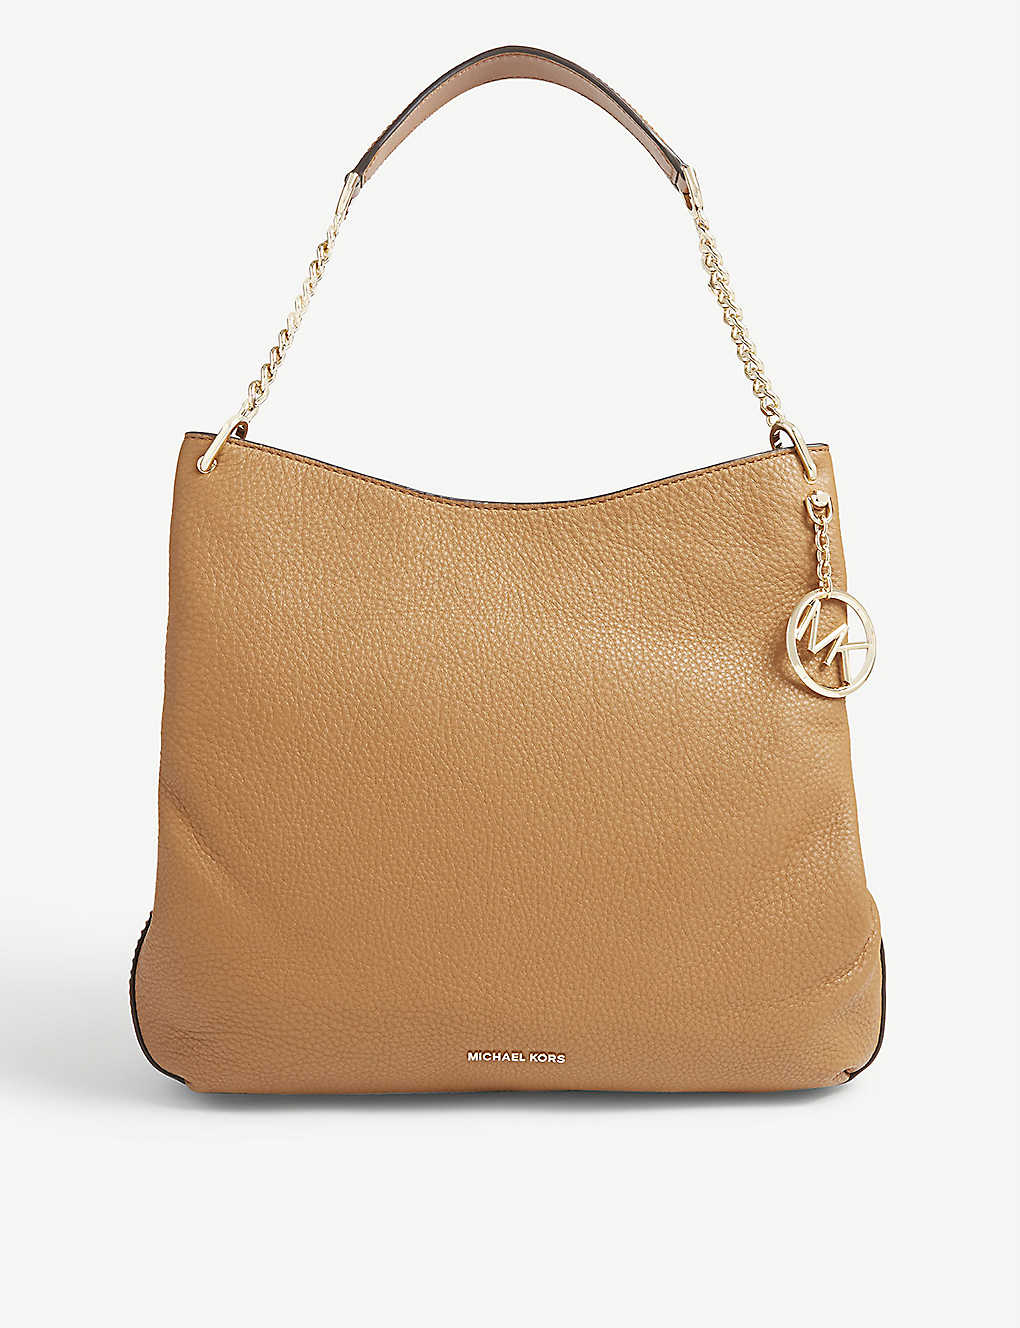 cfa24f3e145dc5 MICHAEL MICHAEL KORS - Lillie large grained leather shoulder bag ...